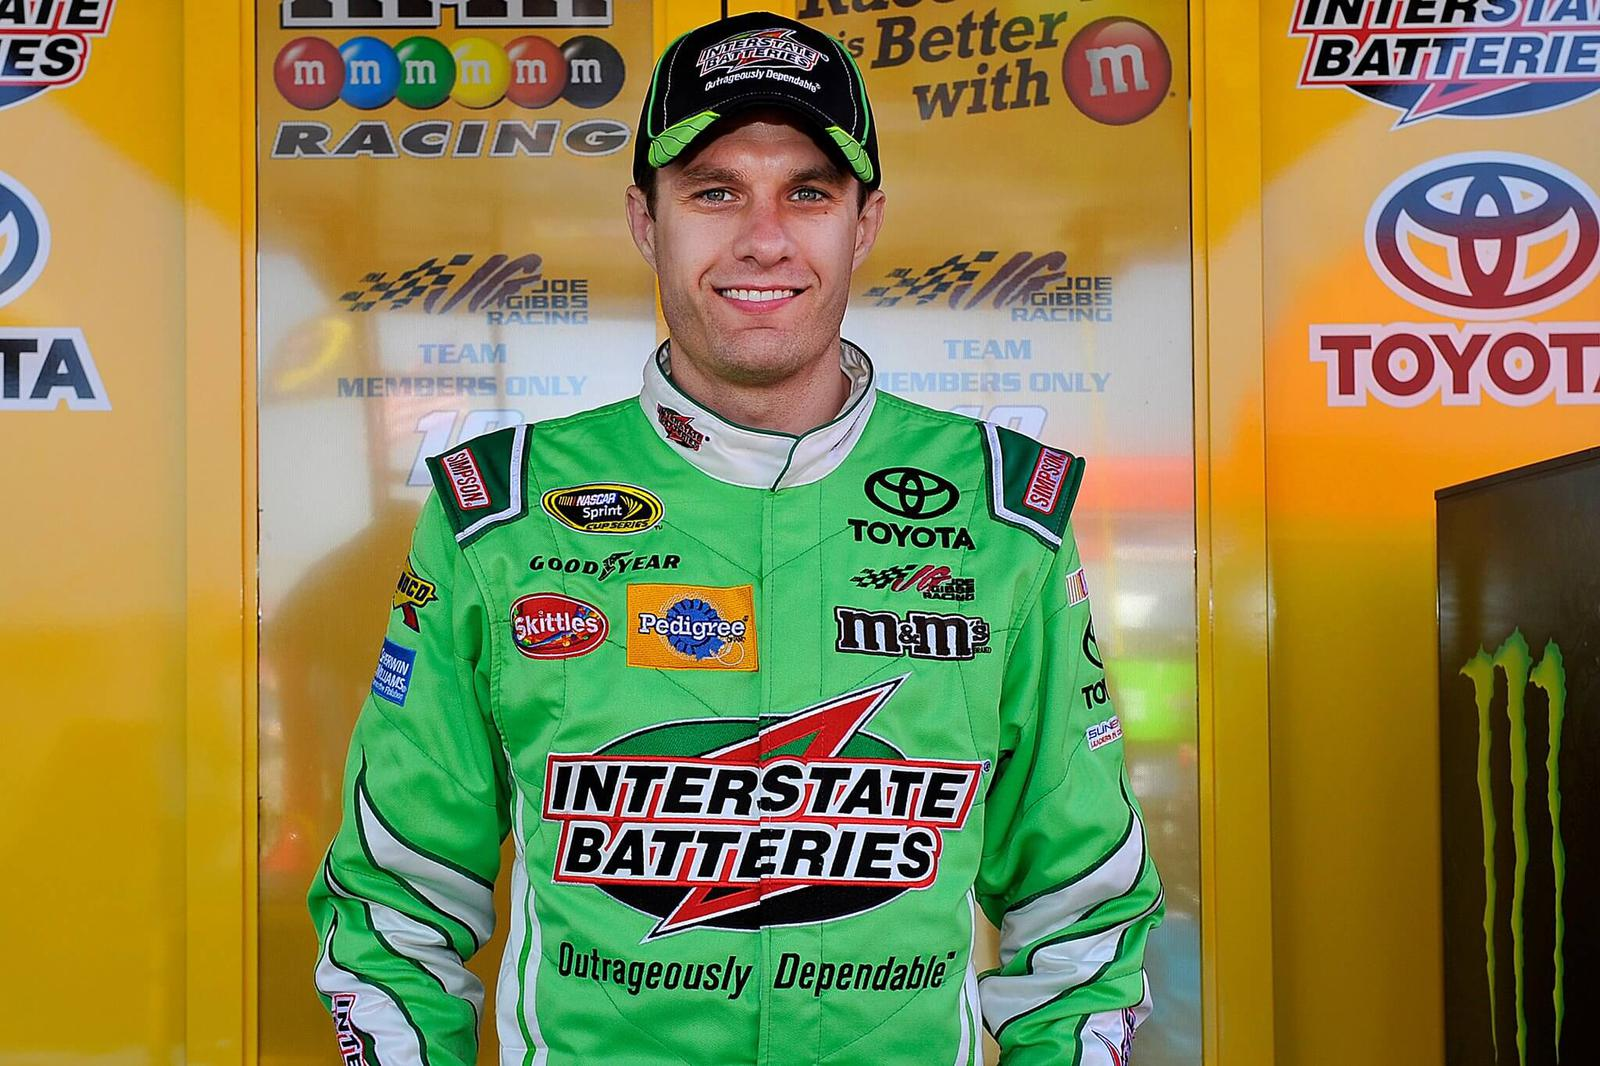 Hotels for NASCAR drivers